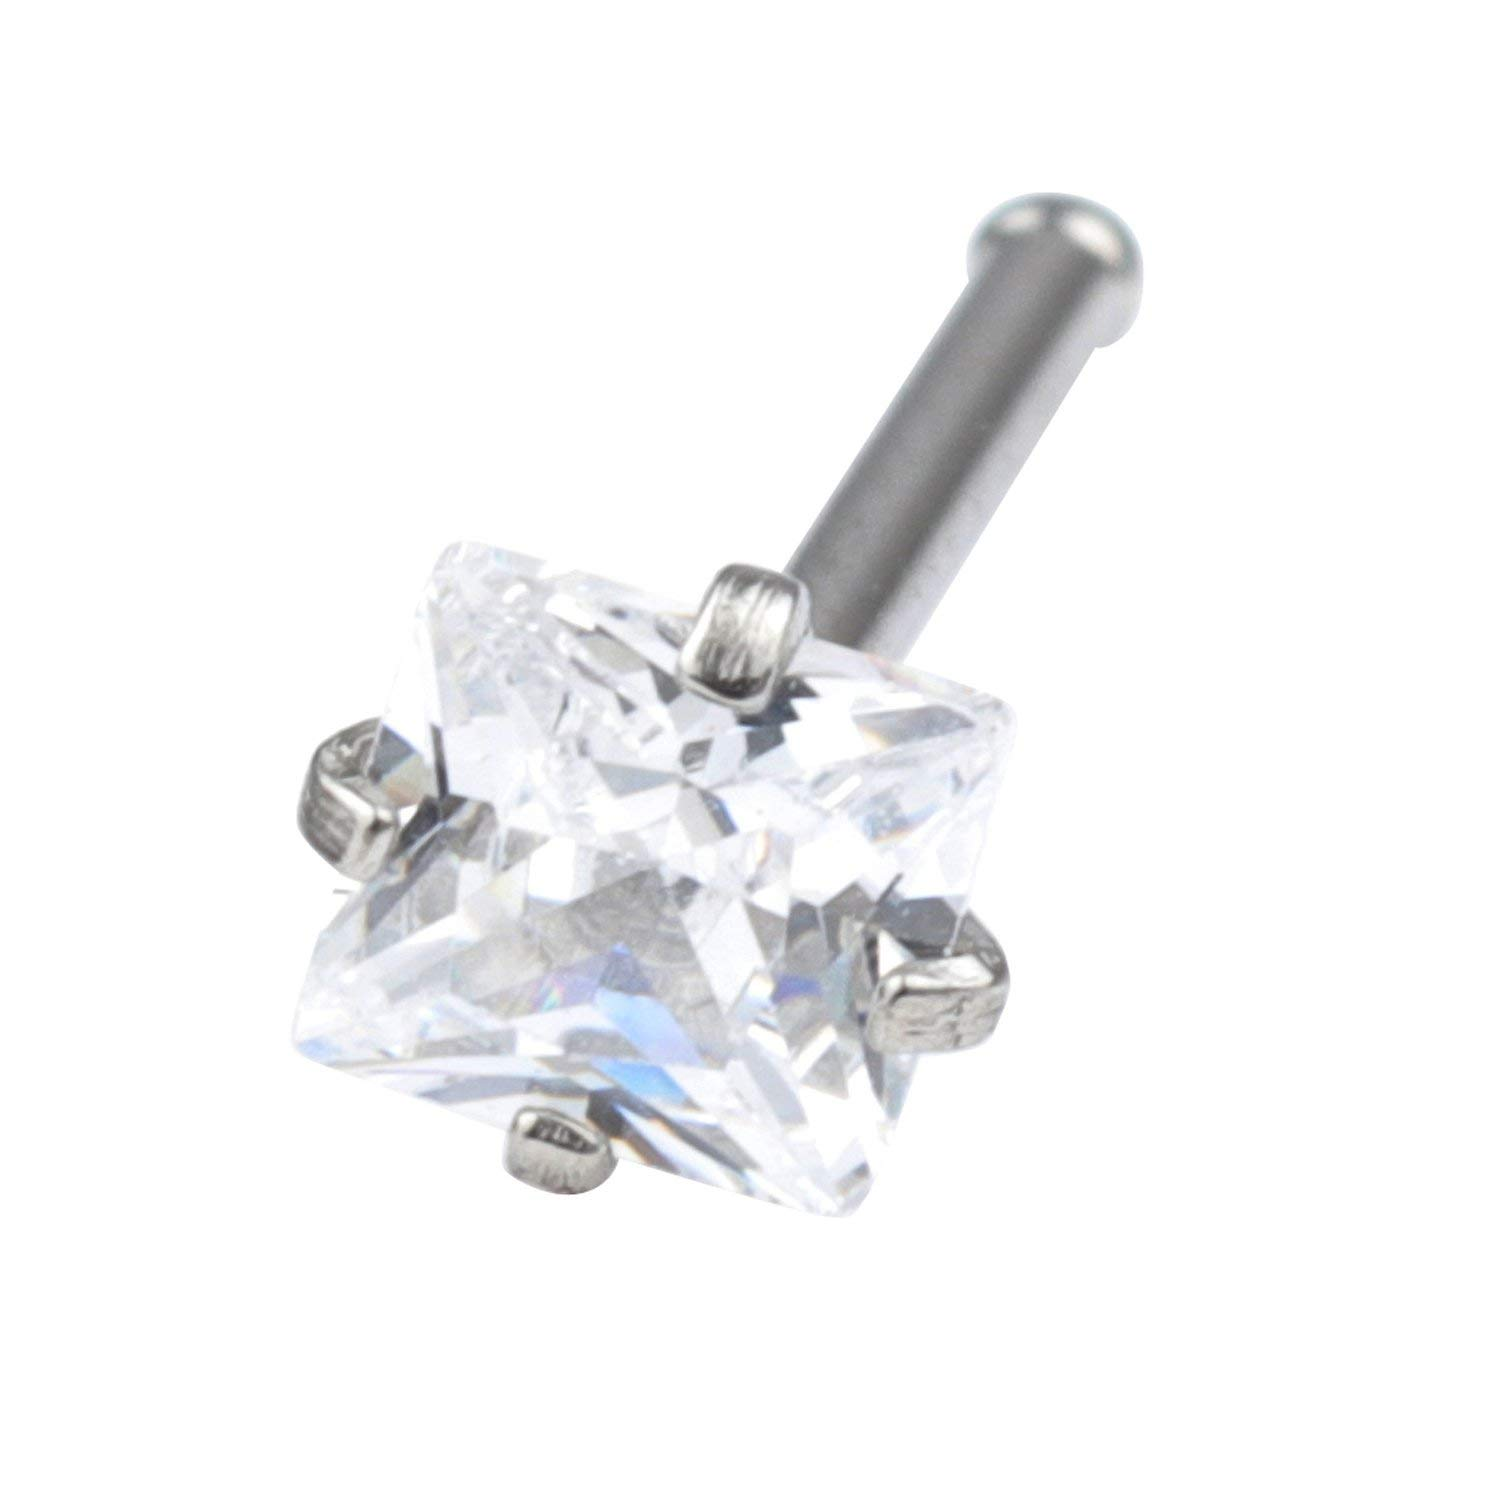 Cheap 3mm Diamond Nose Stud, find 3mm Diamond Nose Stud deals on